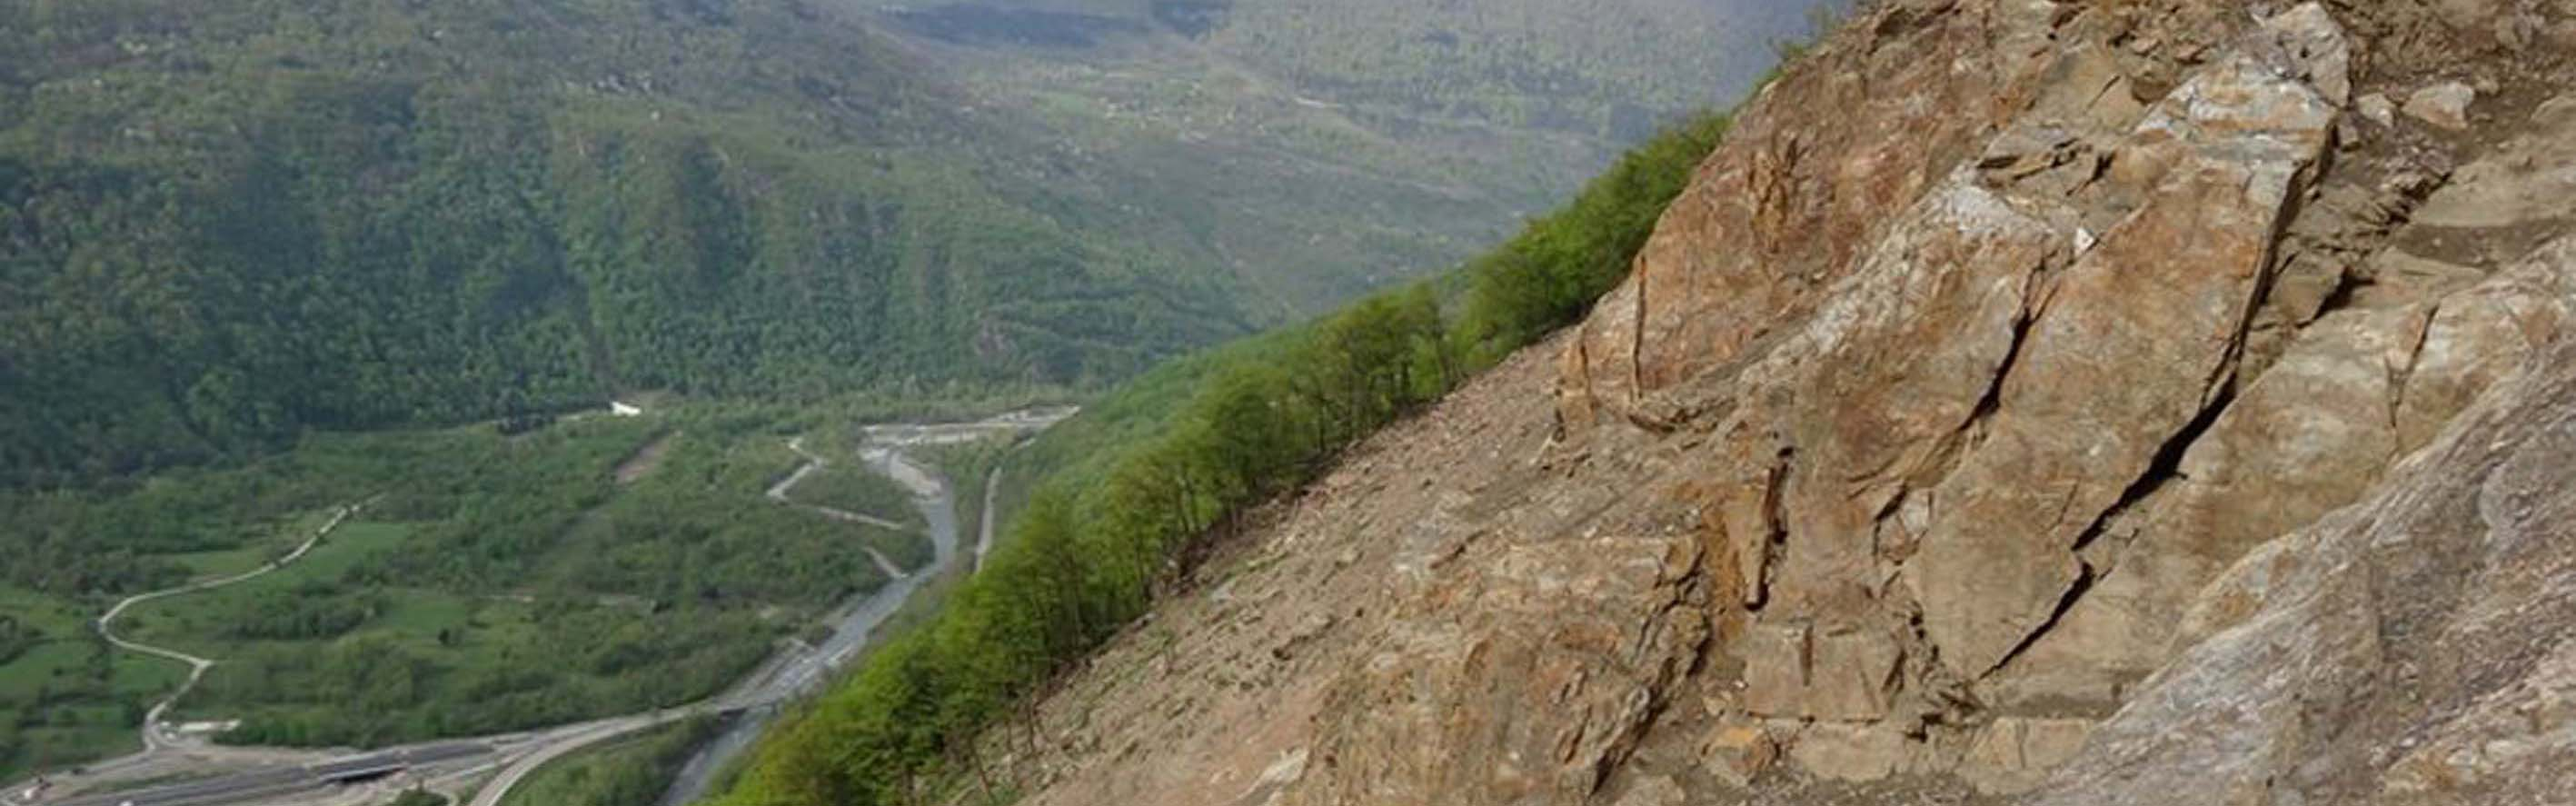 Séchilienne landslide: unstable block at the main scarp and the Romanche river at the bottom